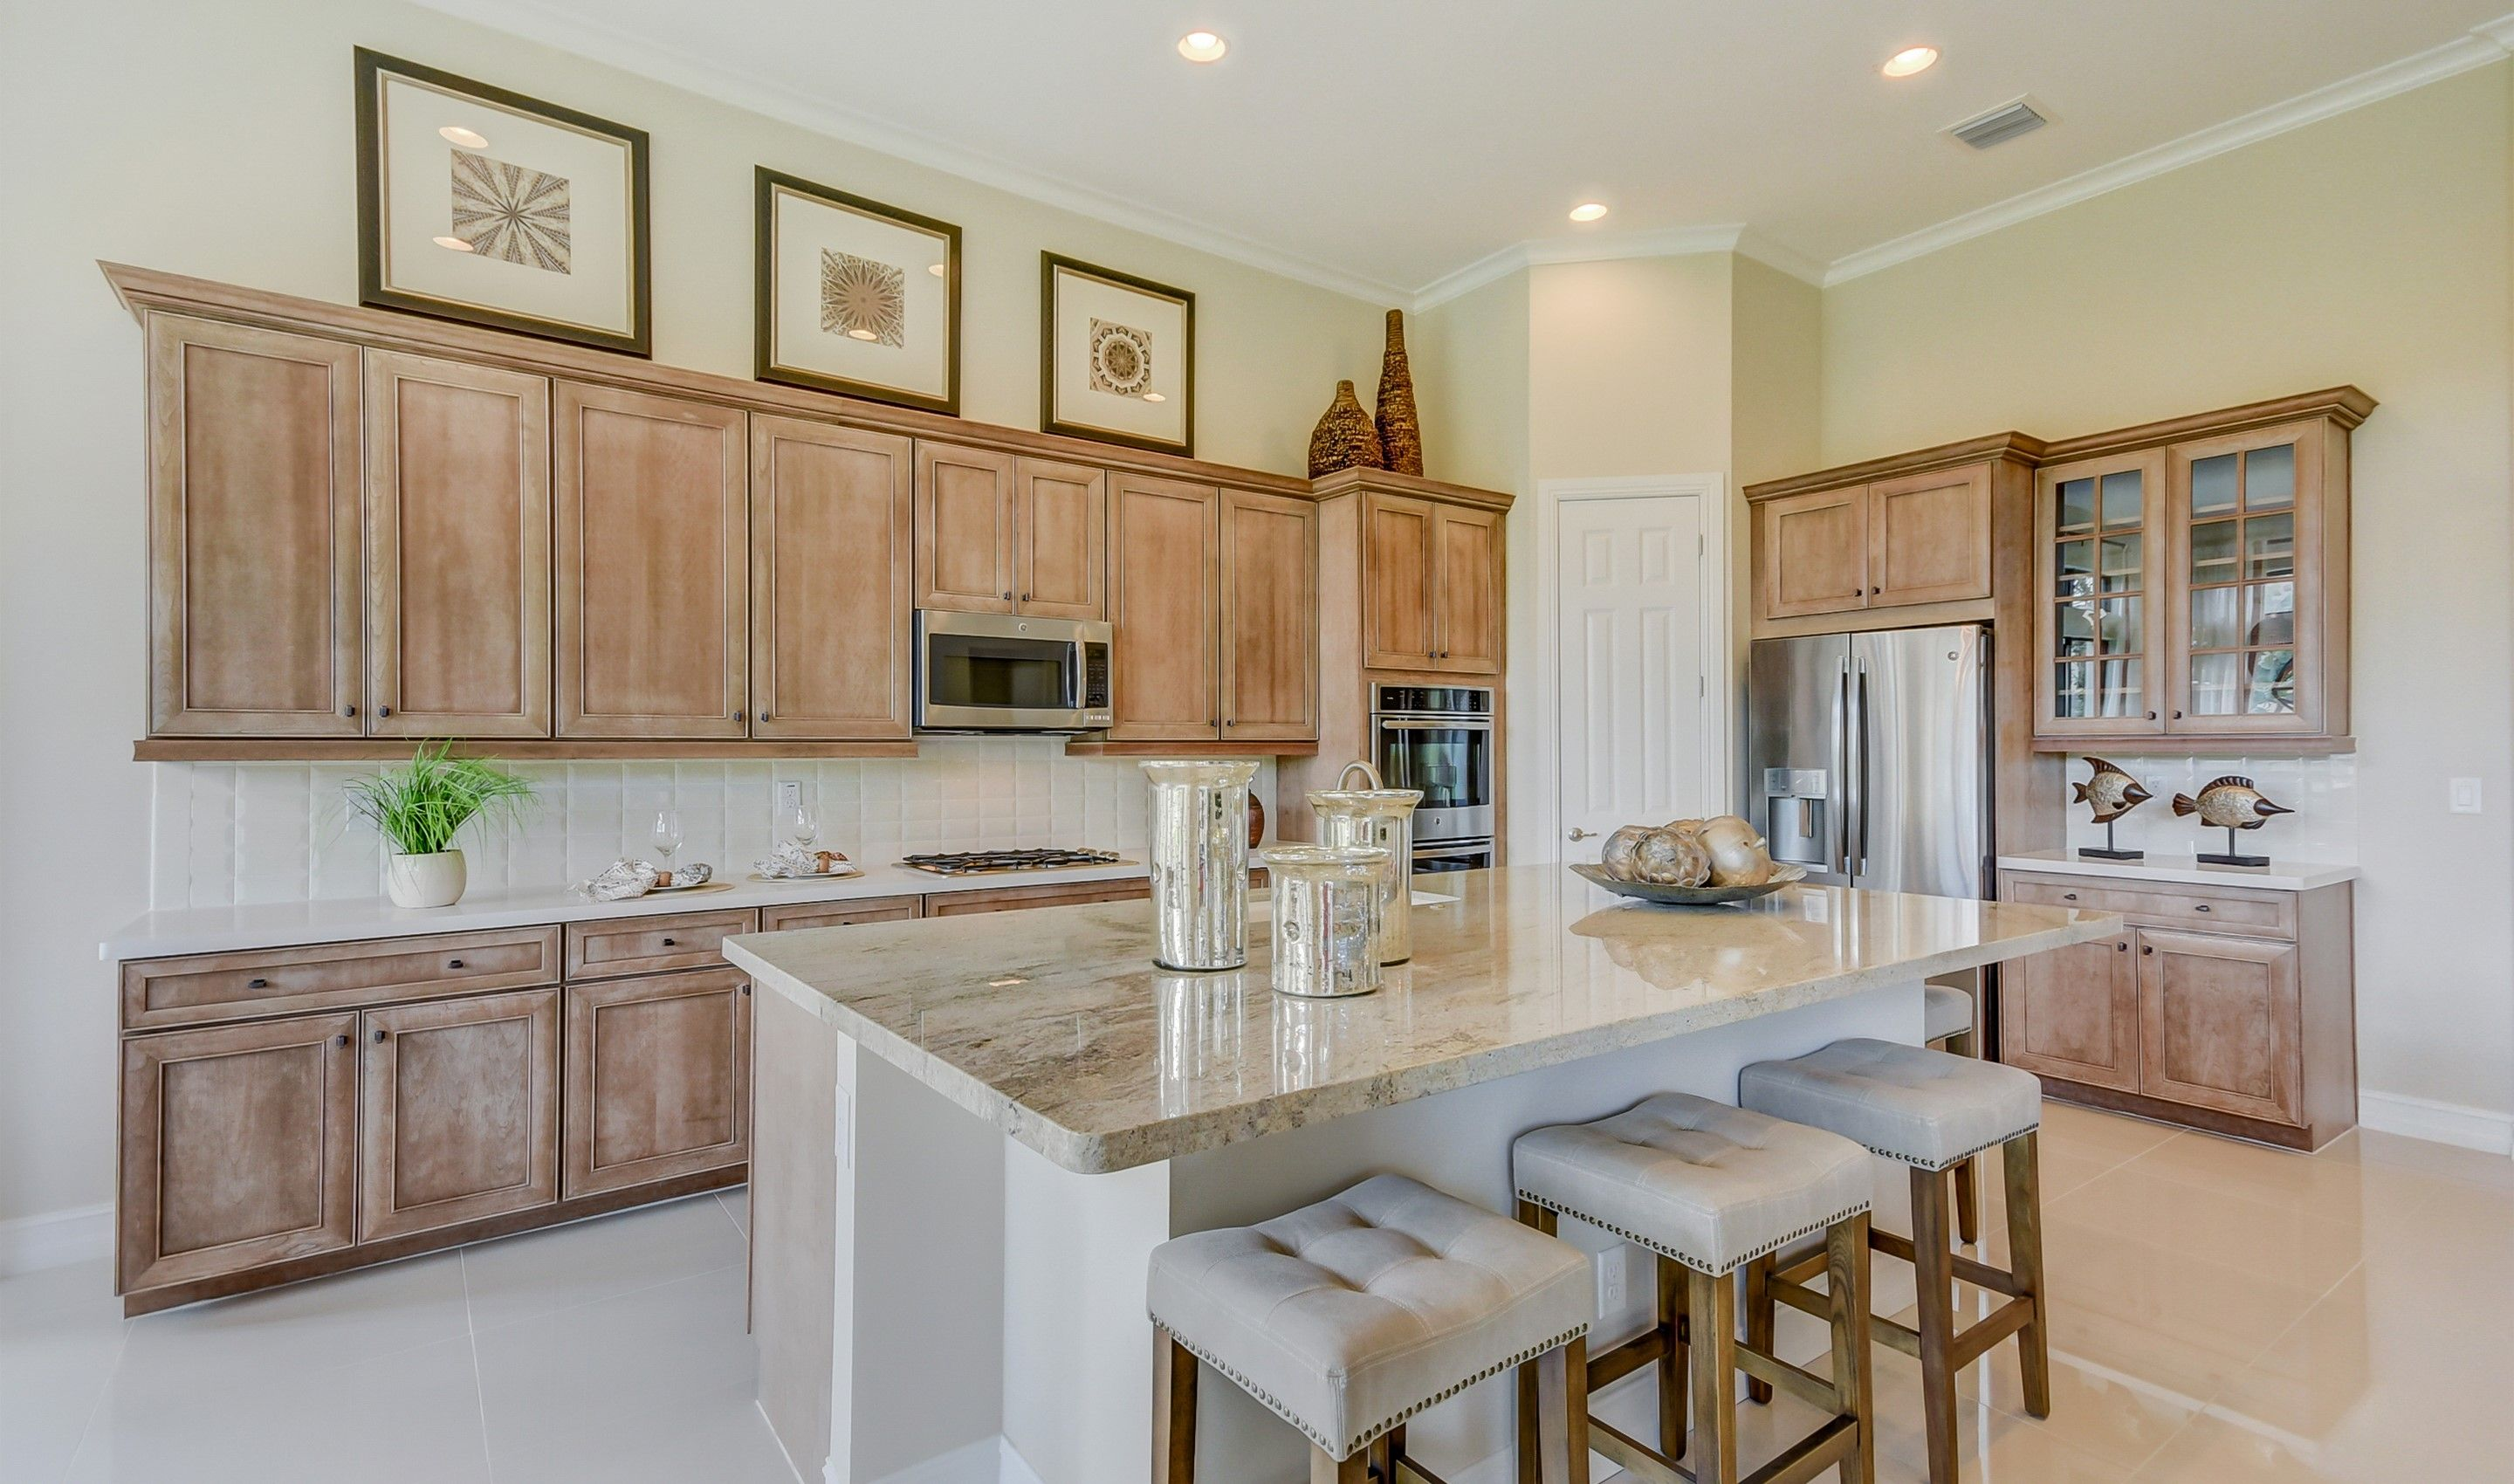 Kitchen featured in the Vera By K. Hovnanian's® Four Seasons in Broward County-Ft. Lauderdale, FL